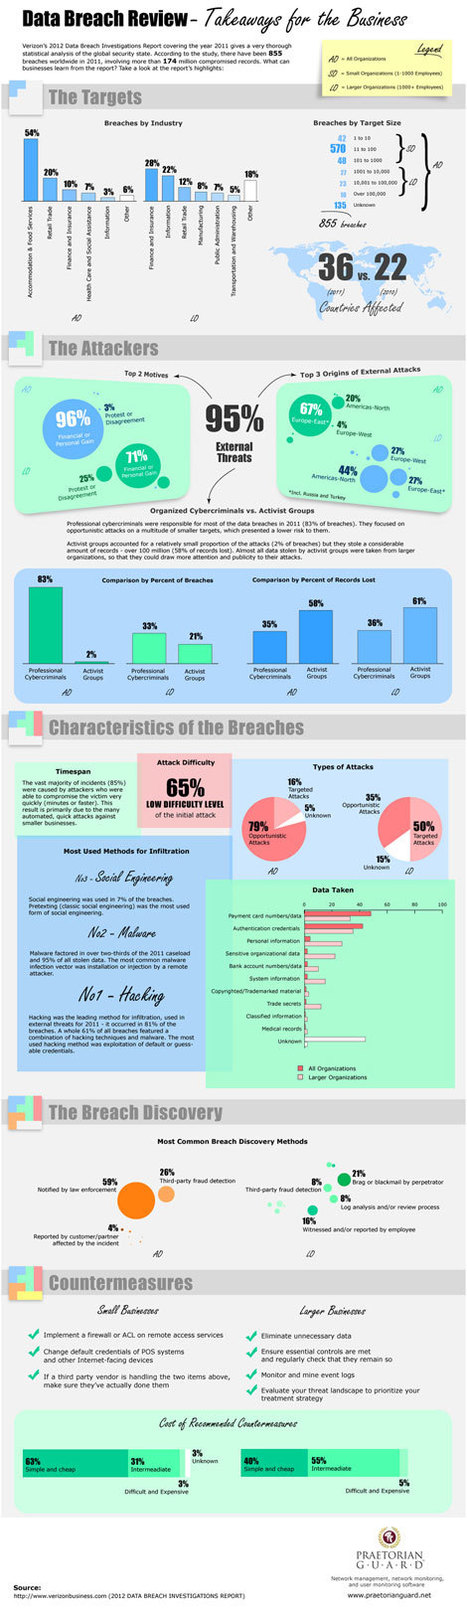 Infographic: Data Breach Review - Takeaways for the Business   Security Infographics   Scoop.it